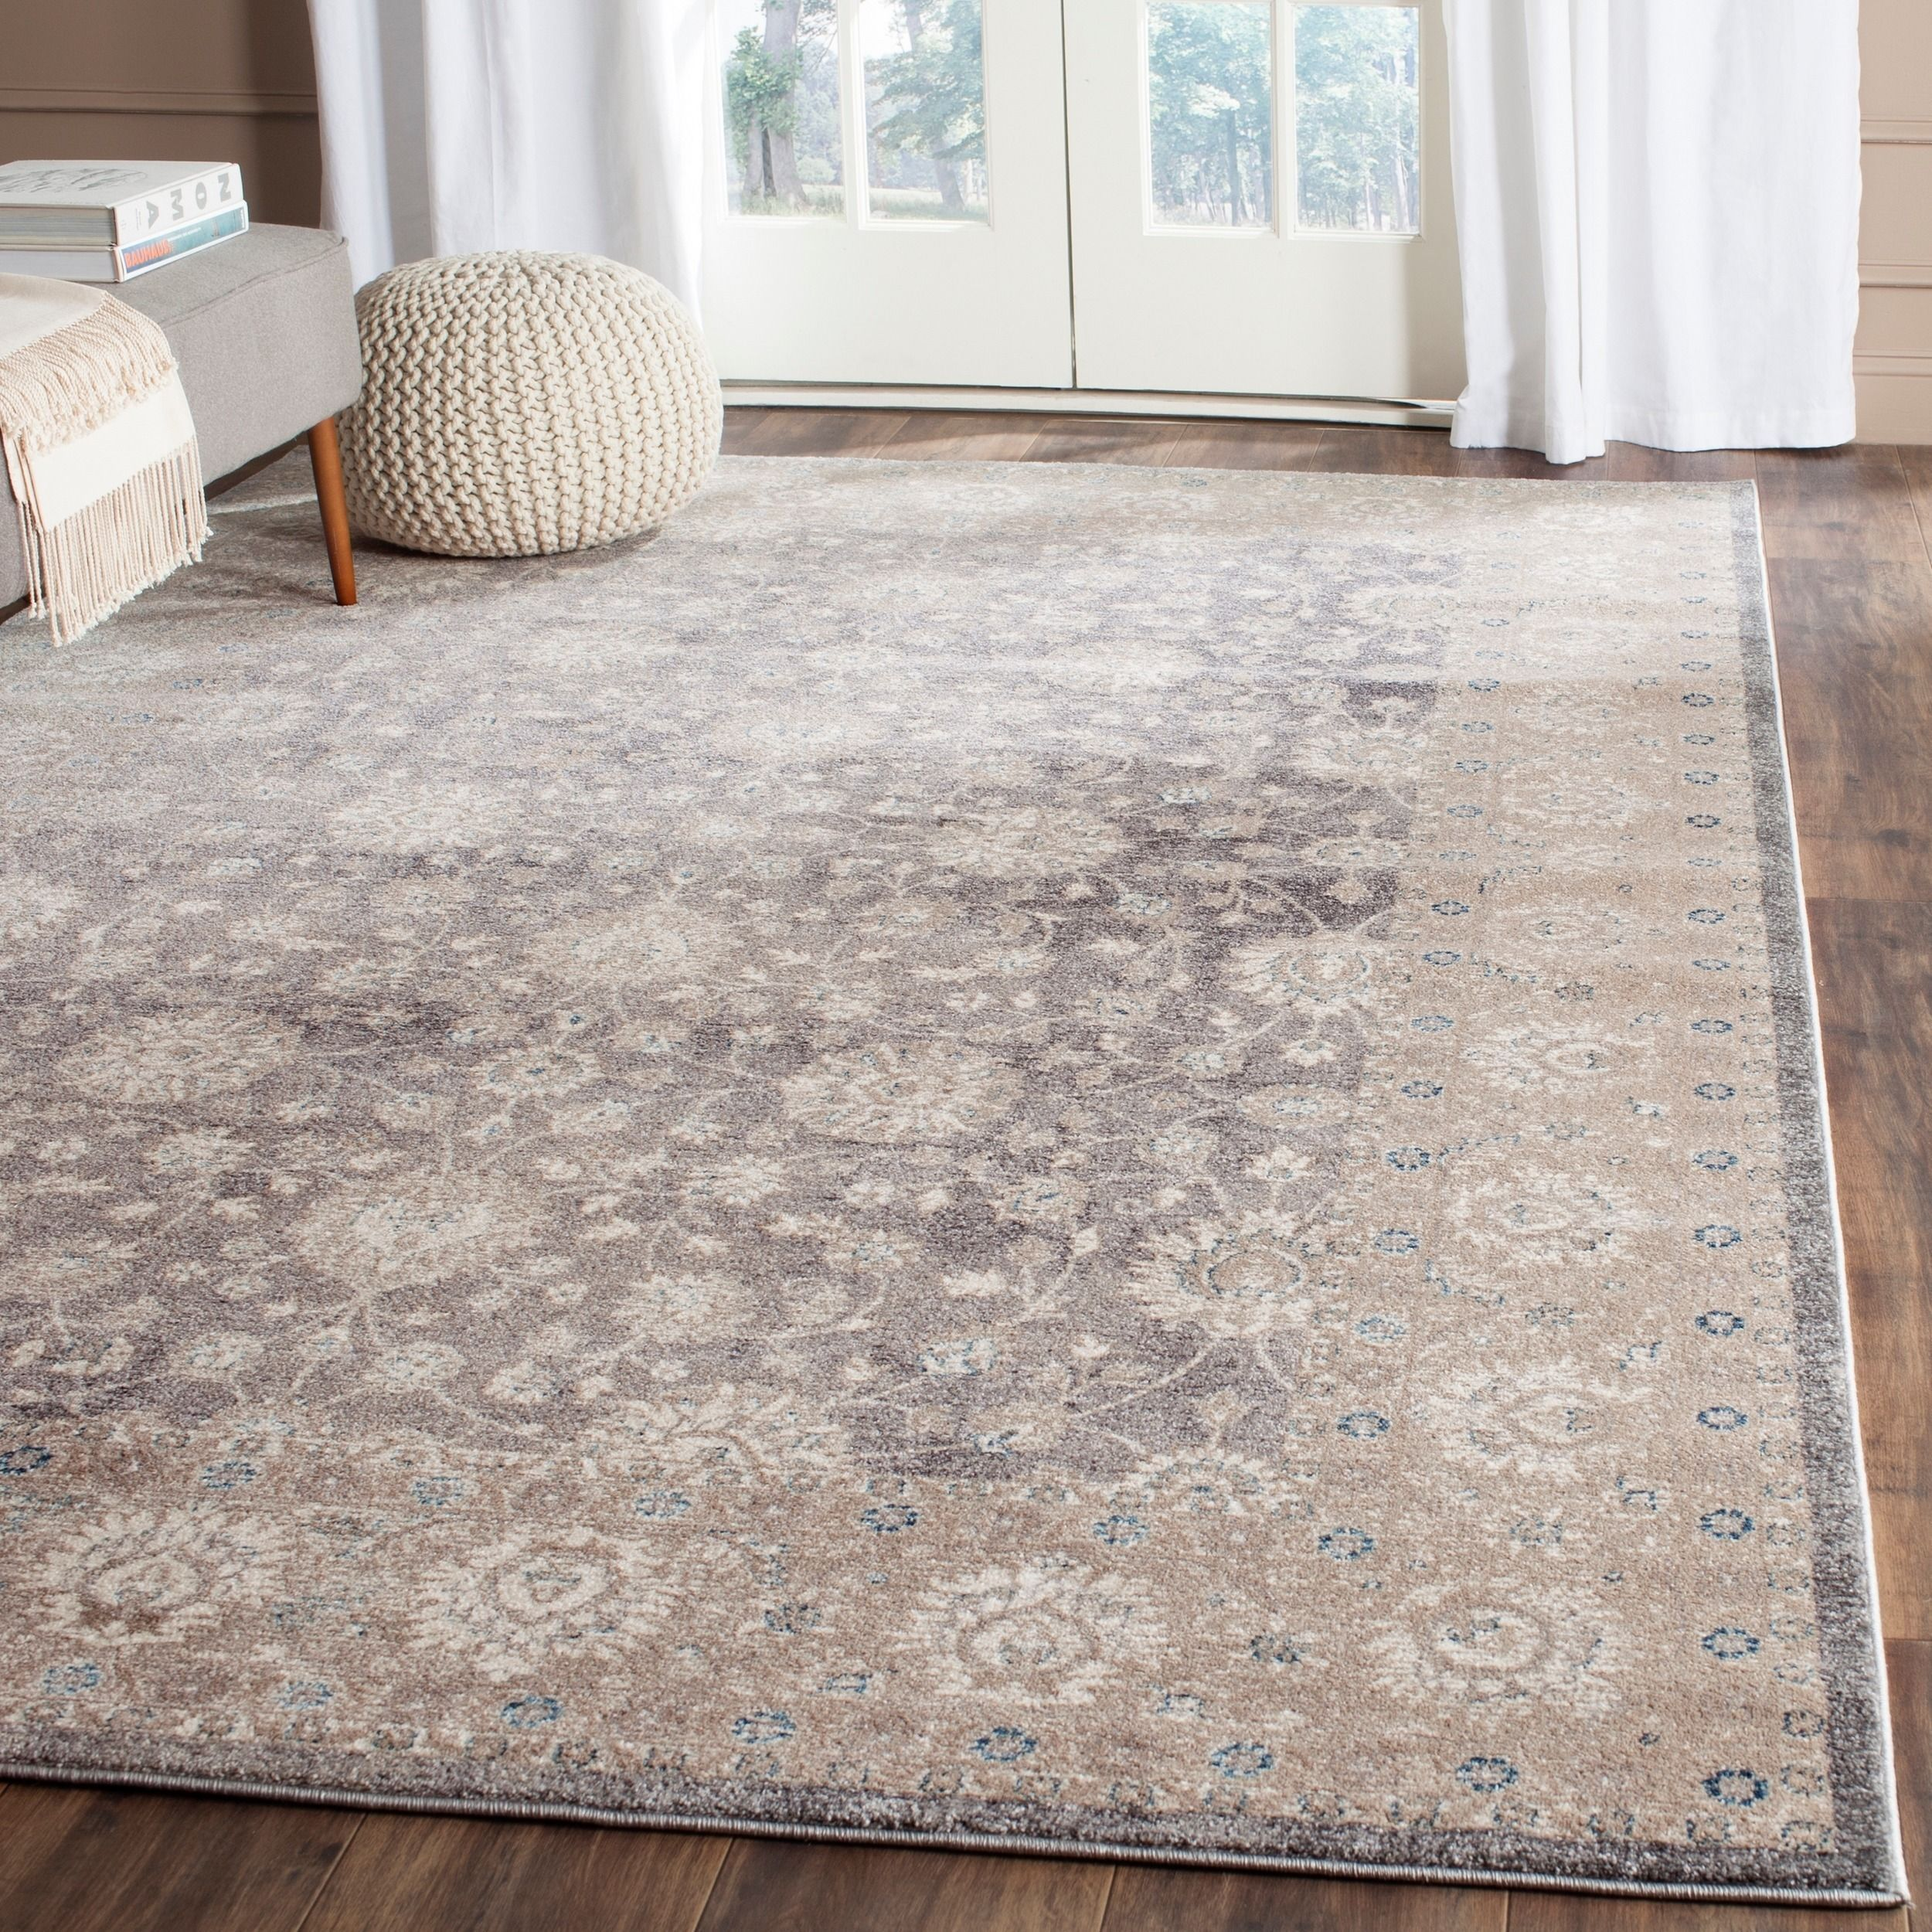 Superior 5x8   6x9 Rugs For Less